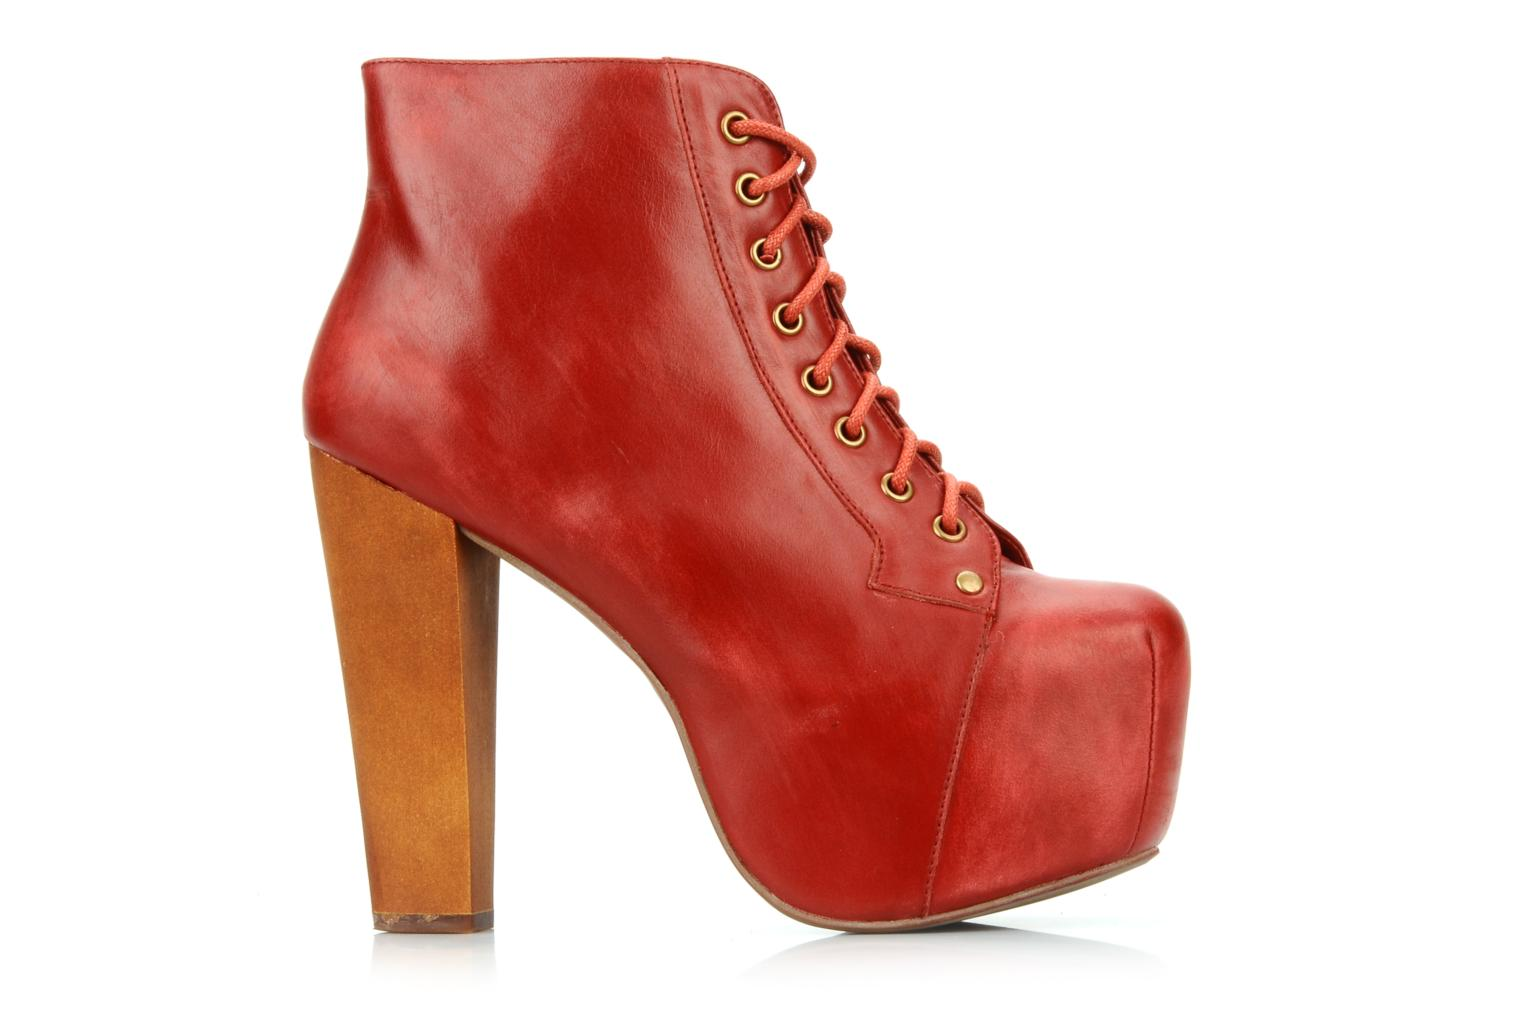 jeffrey campbell lita ankle boots in red at 79471. Black Bedroom Furniture Sets. Home Design Ideas